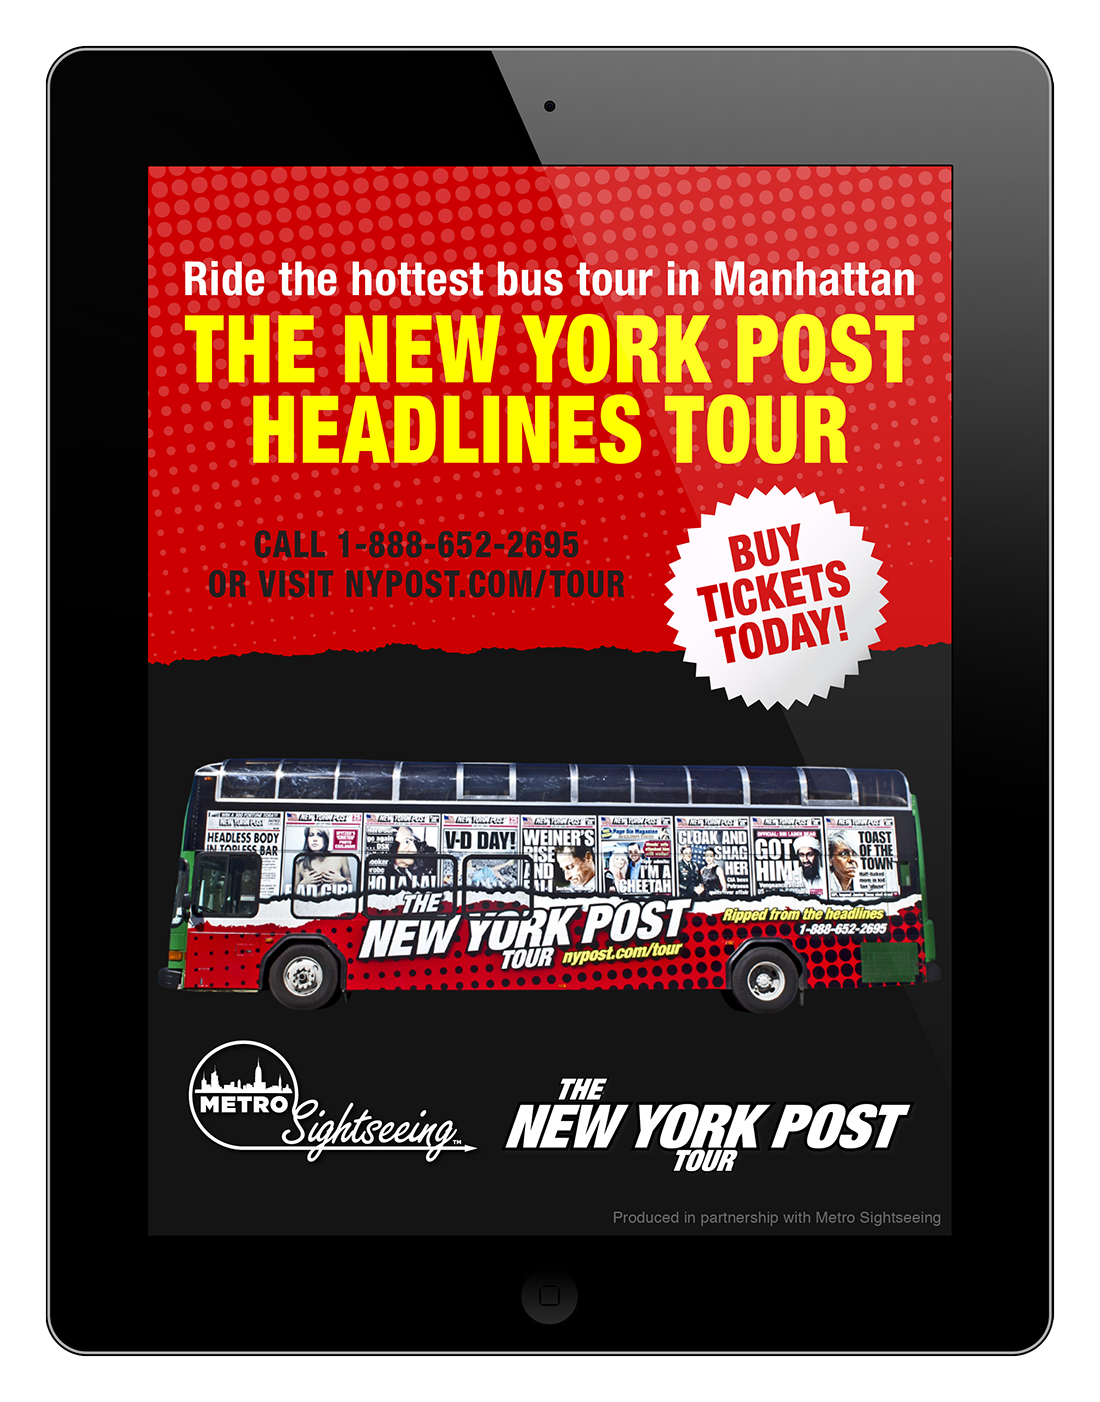 Bus tour iPad ad